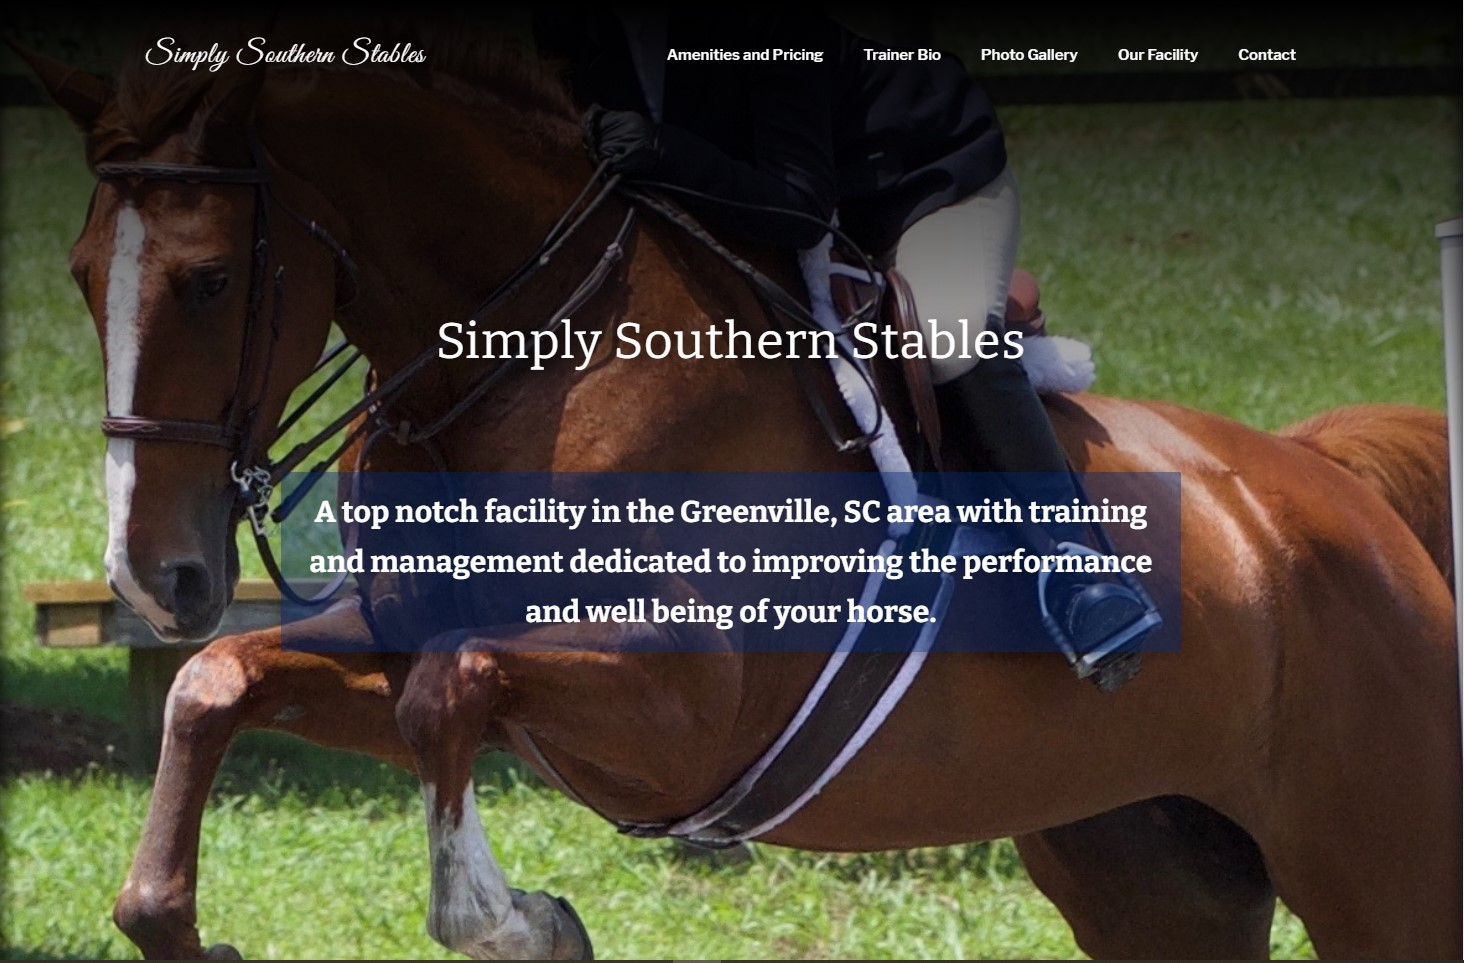 Simply Southern Stables is a website Barracuda Designs was hired to make